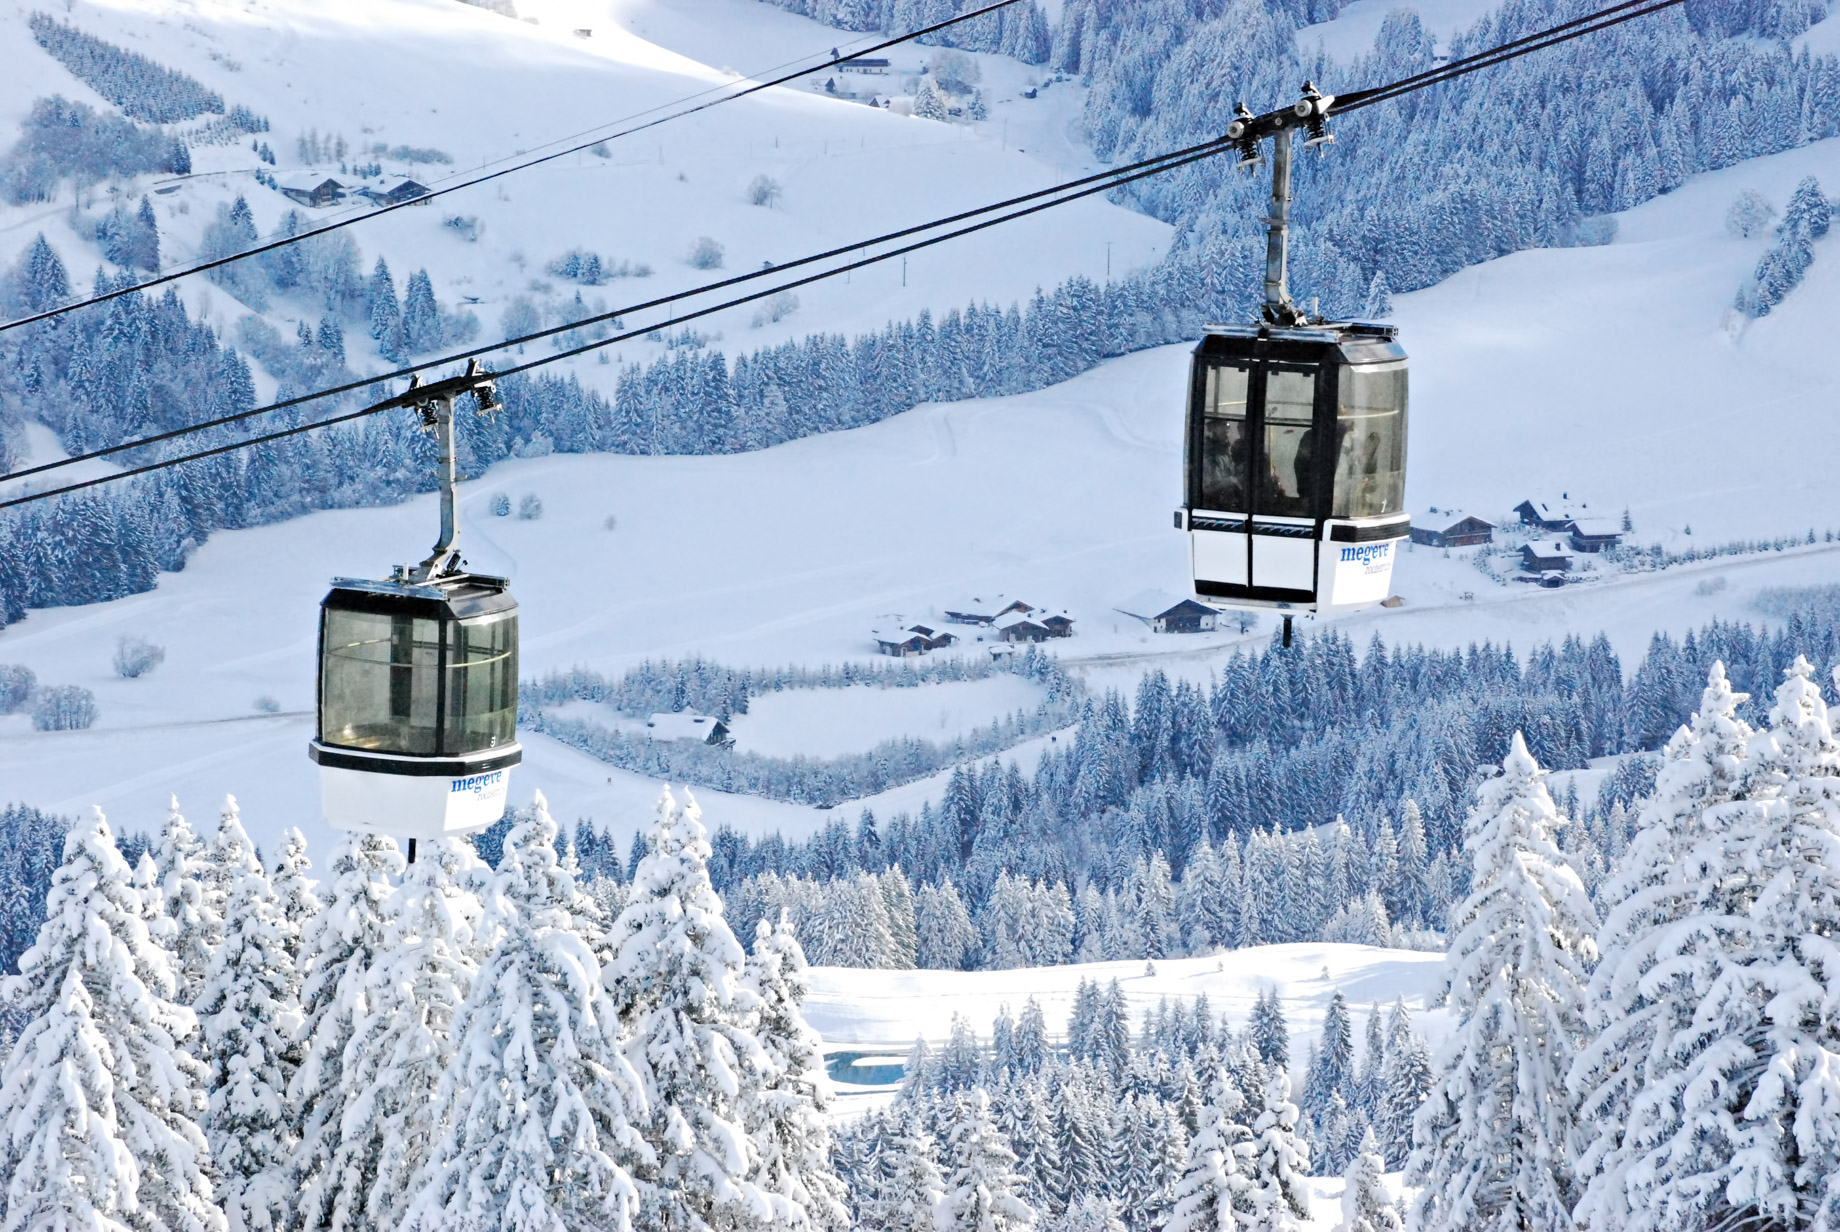 Megève - French Alps Mountain Resort - An Exclusive Très Chic Luxury Winter Paradise